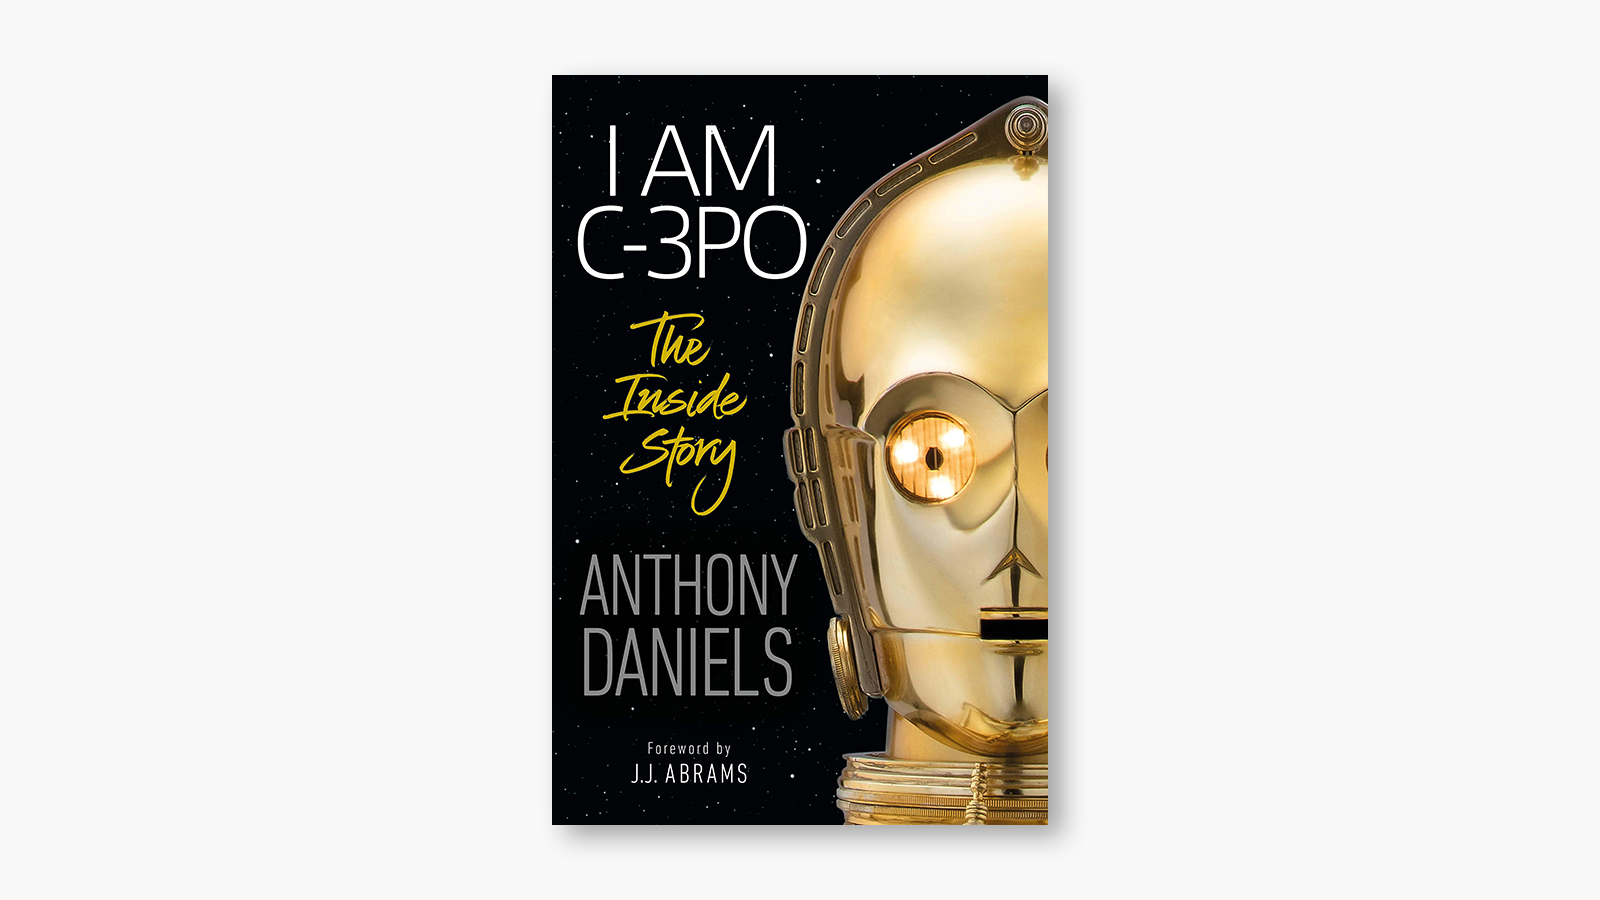 'I Am C-3PO - The Inside Story' by Anthony Daniels